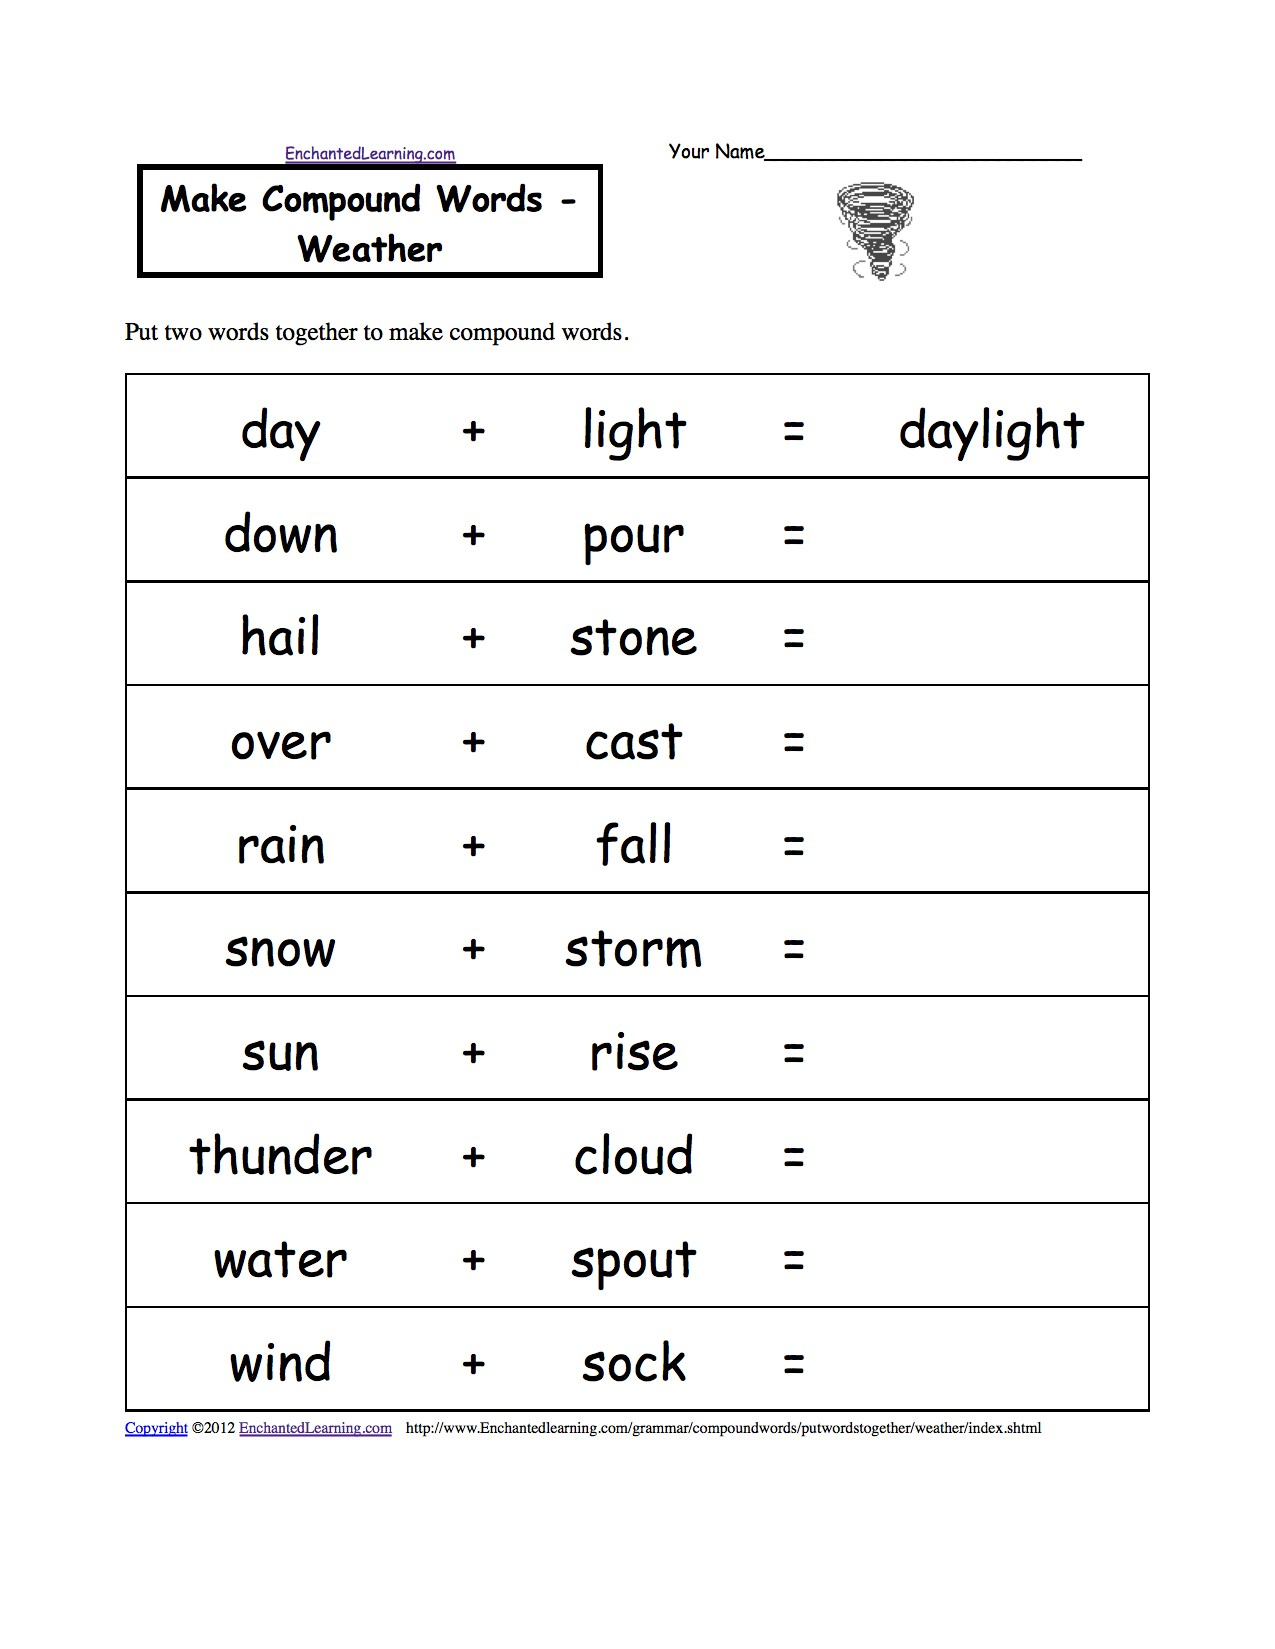 Free Printable Science Worksheets For 2Nd Grade – Worksheet Template | Free Printable Science Worksheets For Grade 2